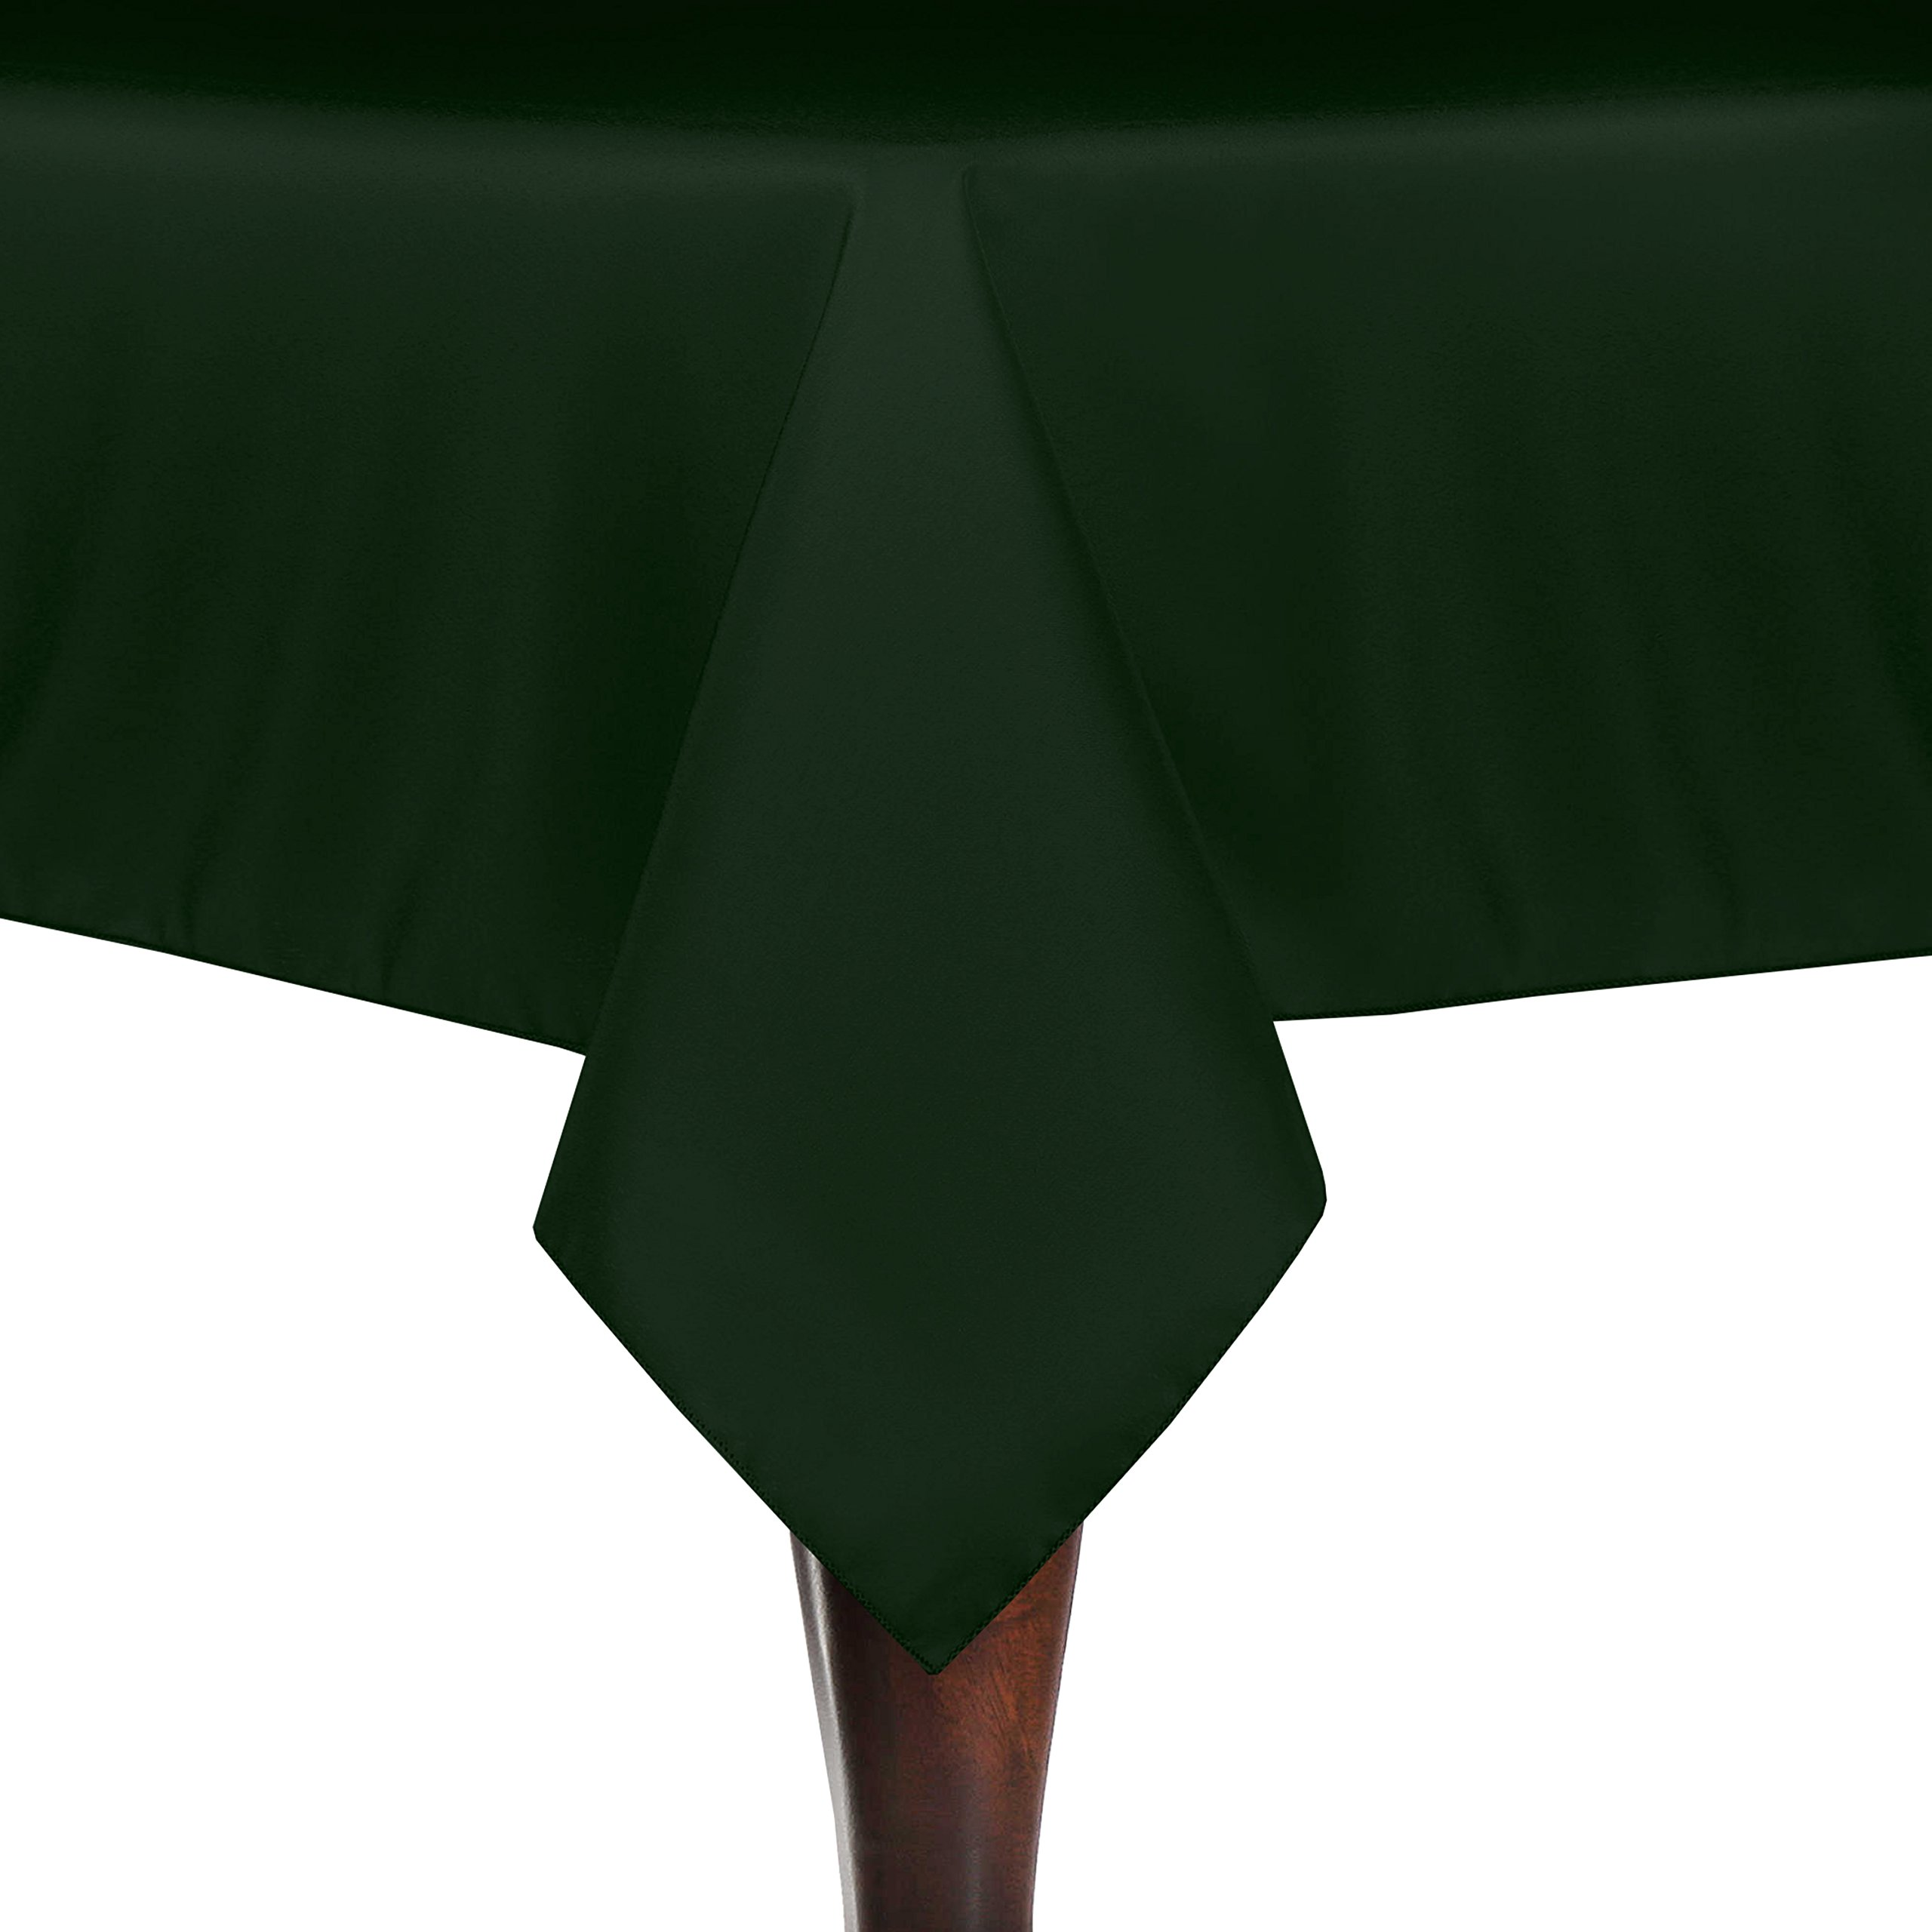 Ultimate Textile (10 Pack) 60 x 84-Inch Rectangle Tablecloth - for Wedding, Restaurant or Banquet use, Hunter Green